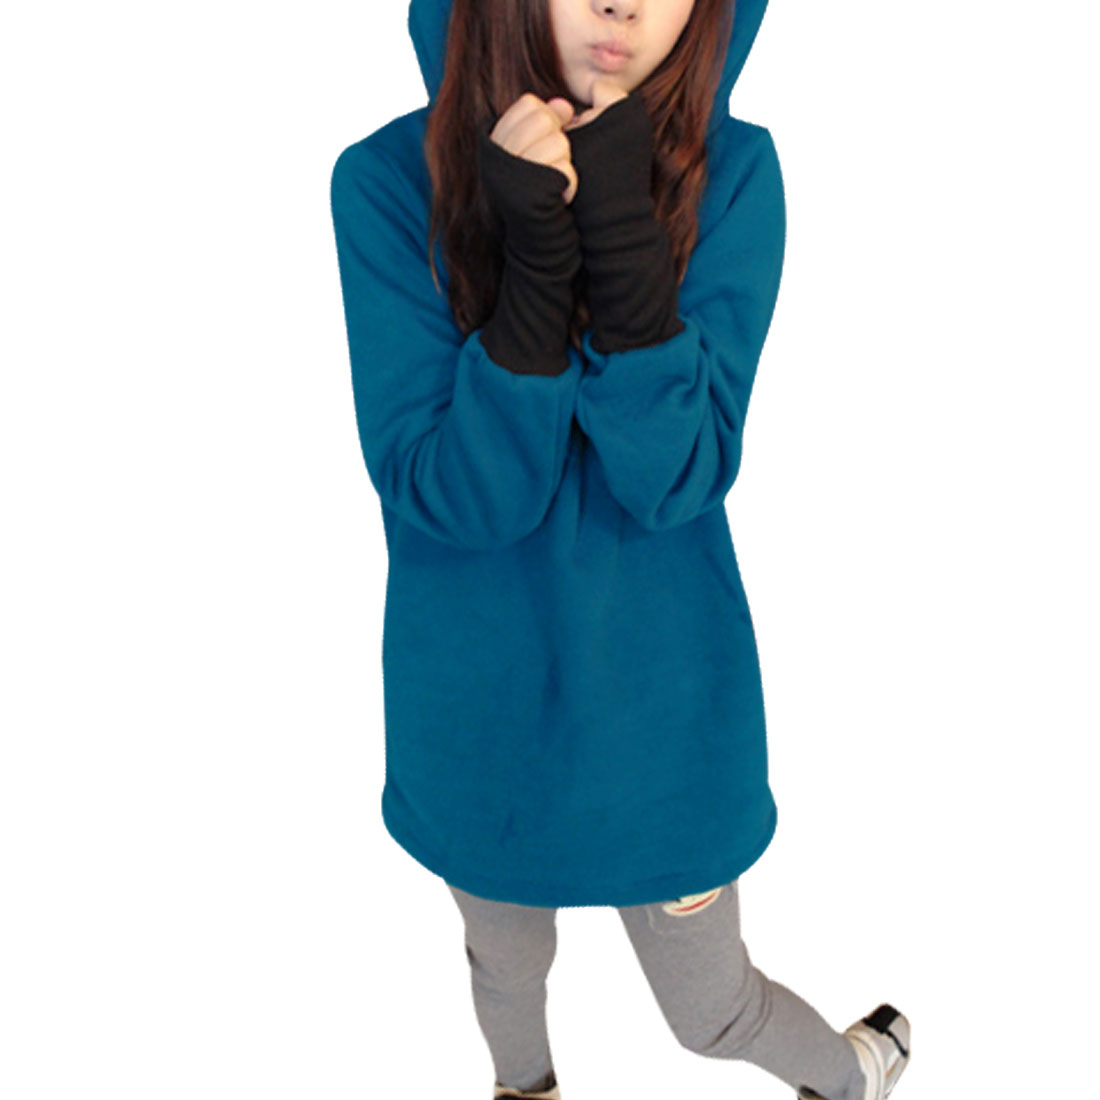 Ladies Sleeve Panel Round Neck Solid Color Skinny Cuff Chic Hoodie Outerwear Blue S